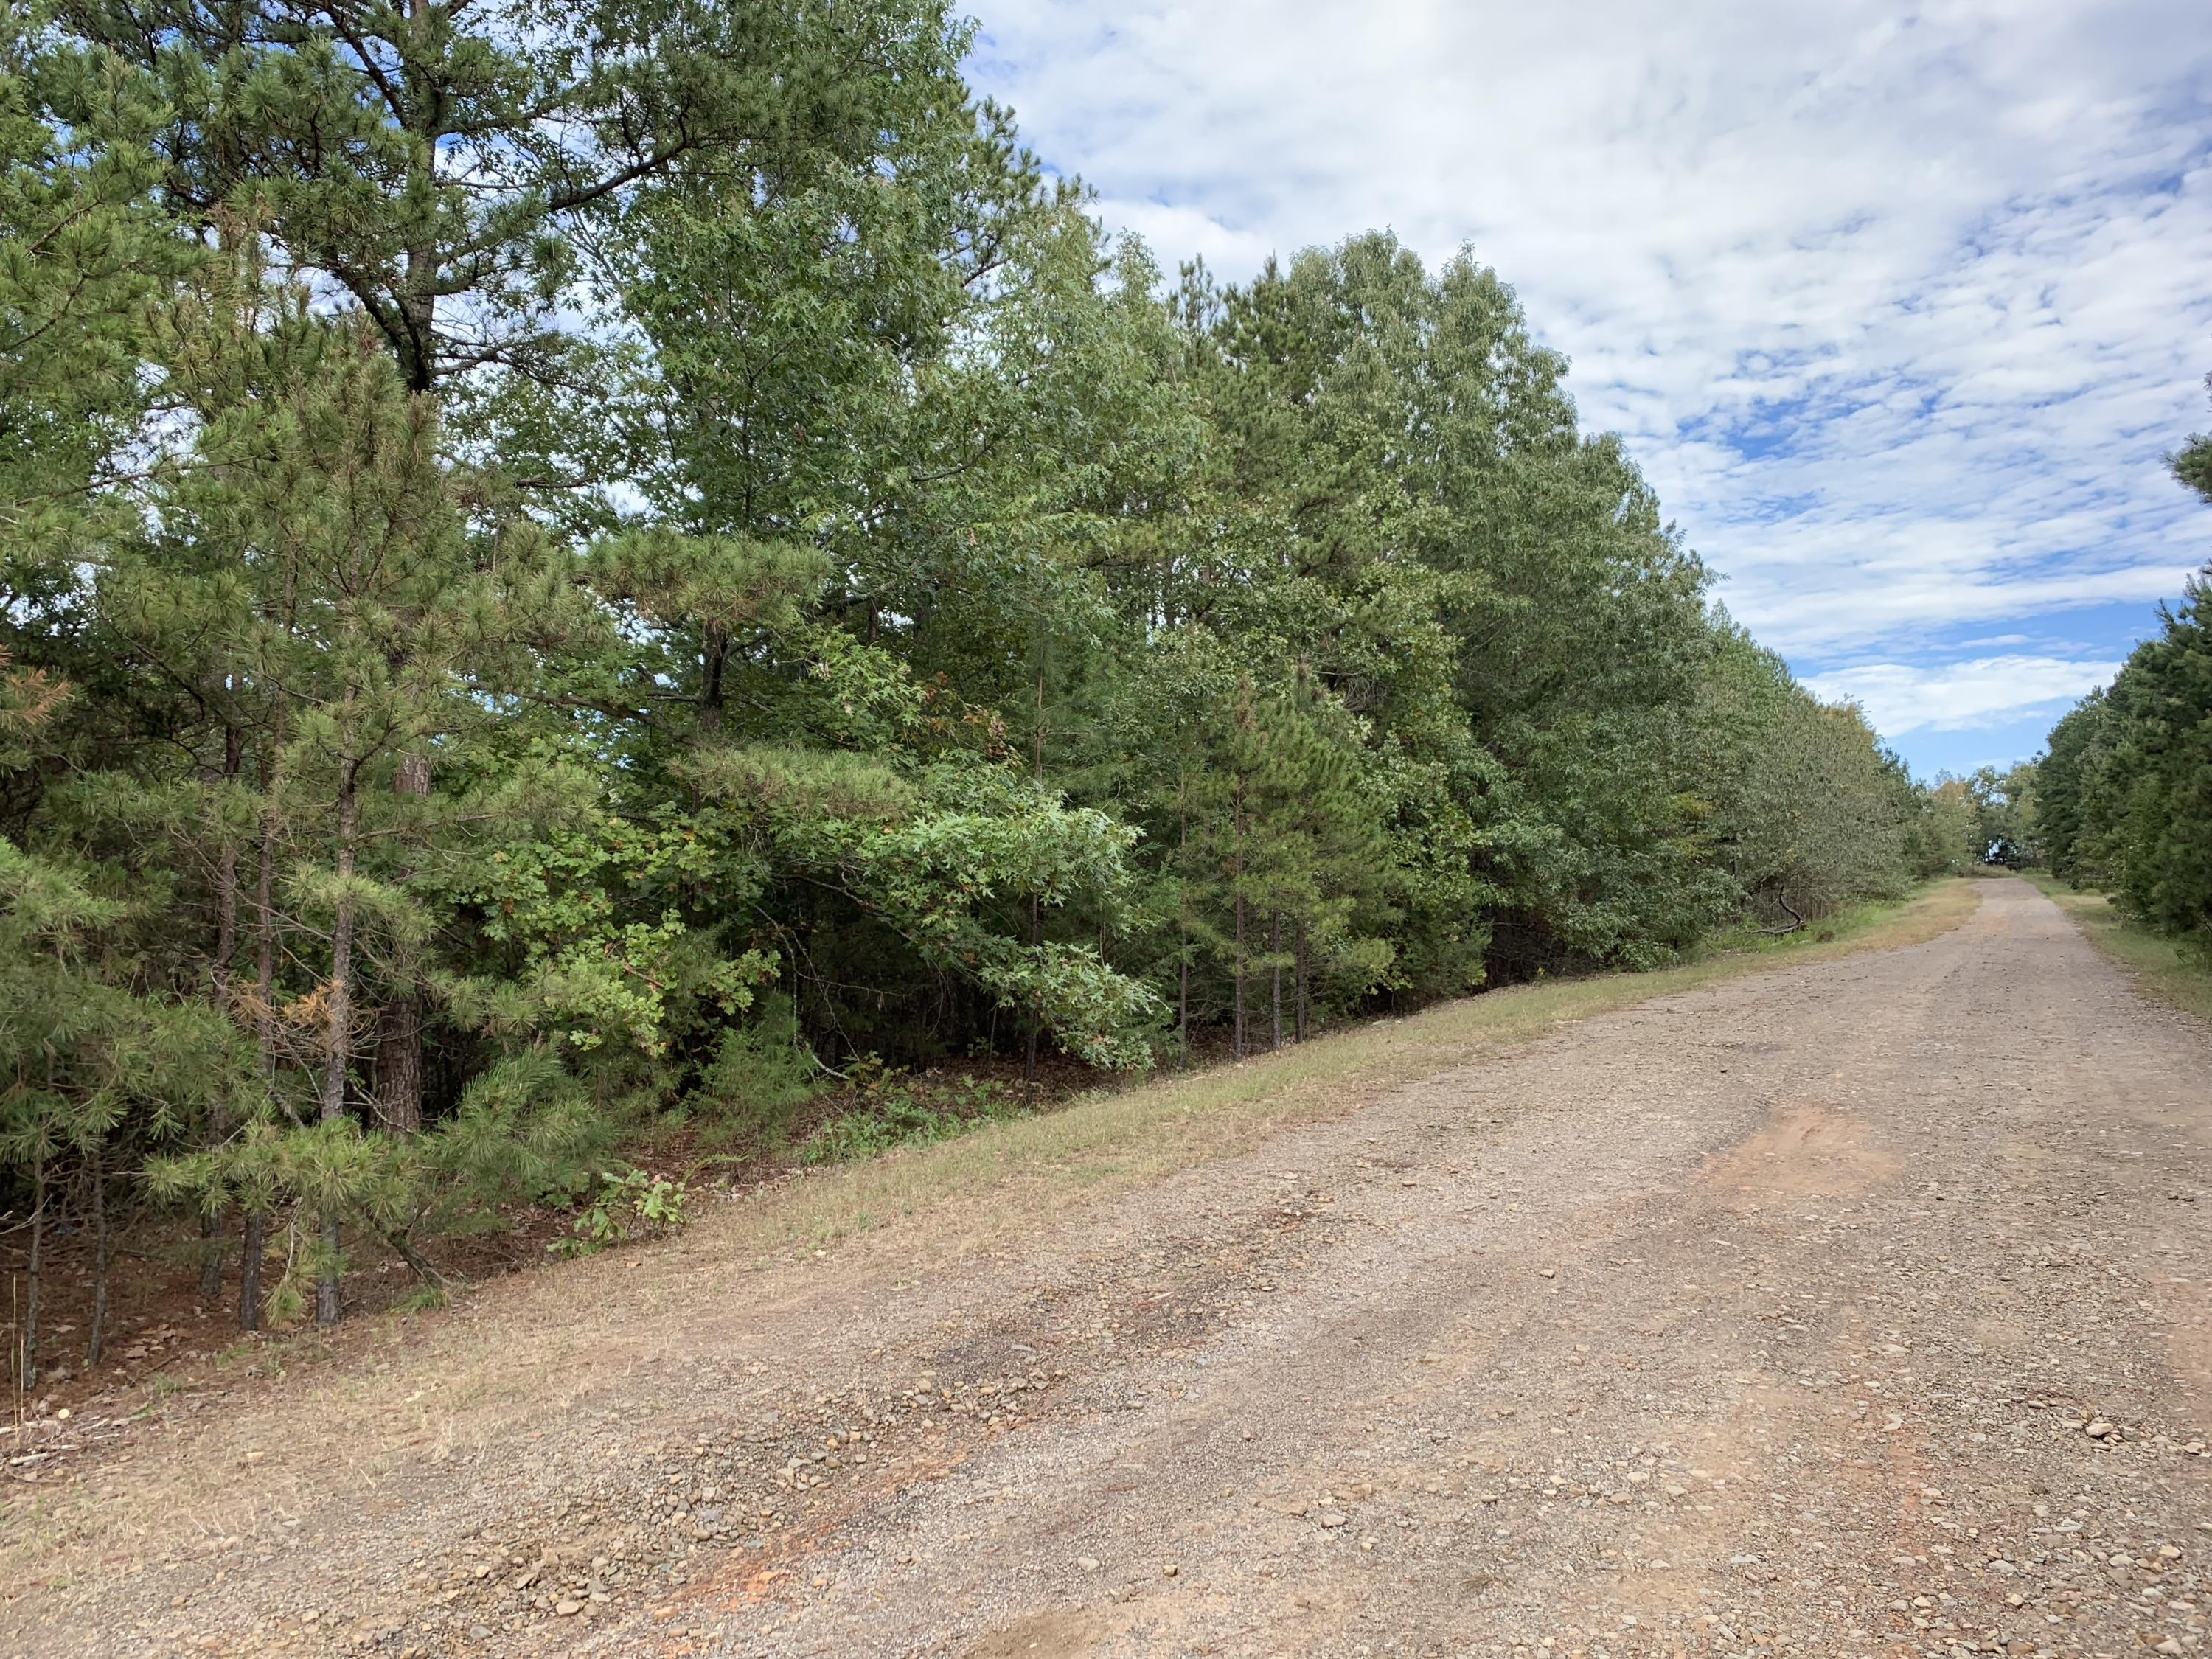 Large photo 5 of land for sale at  Bennett Orchard Estates Lots , London, AR, listed by Coldwell Banker Premier Realty